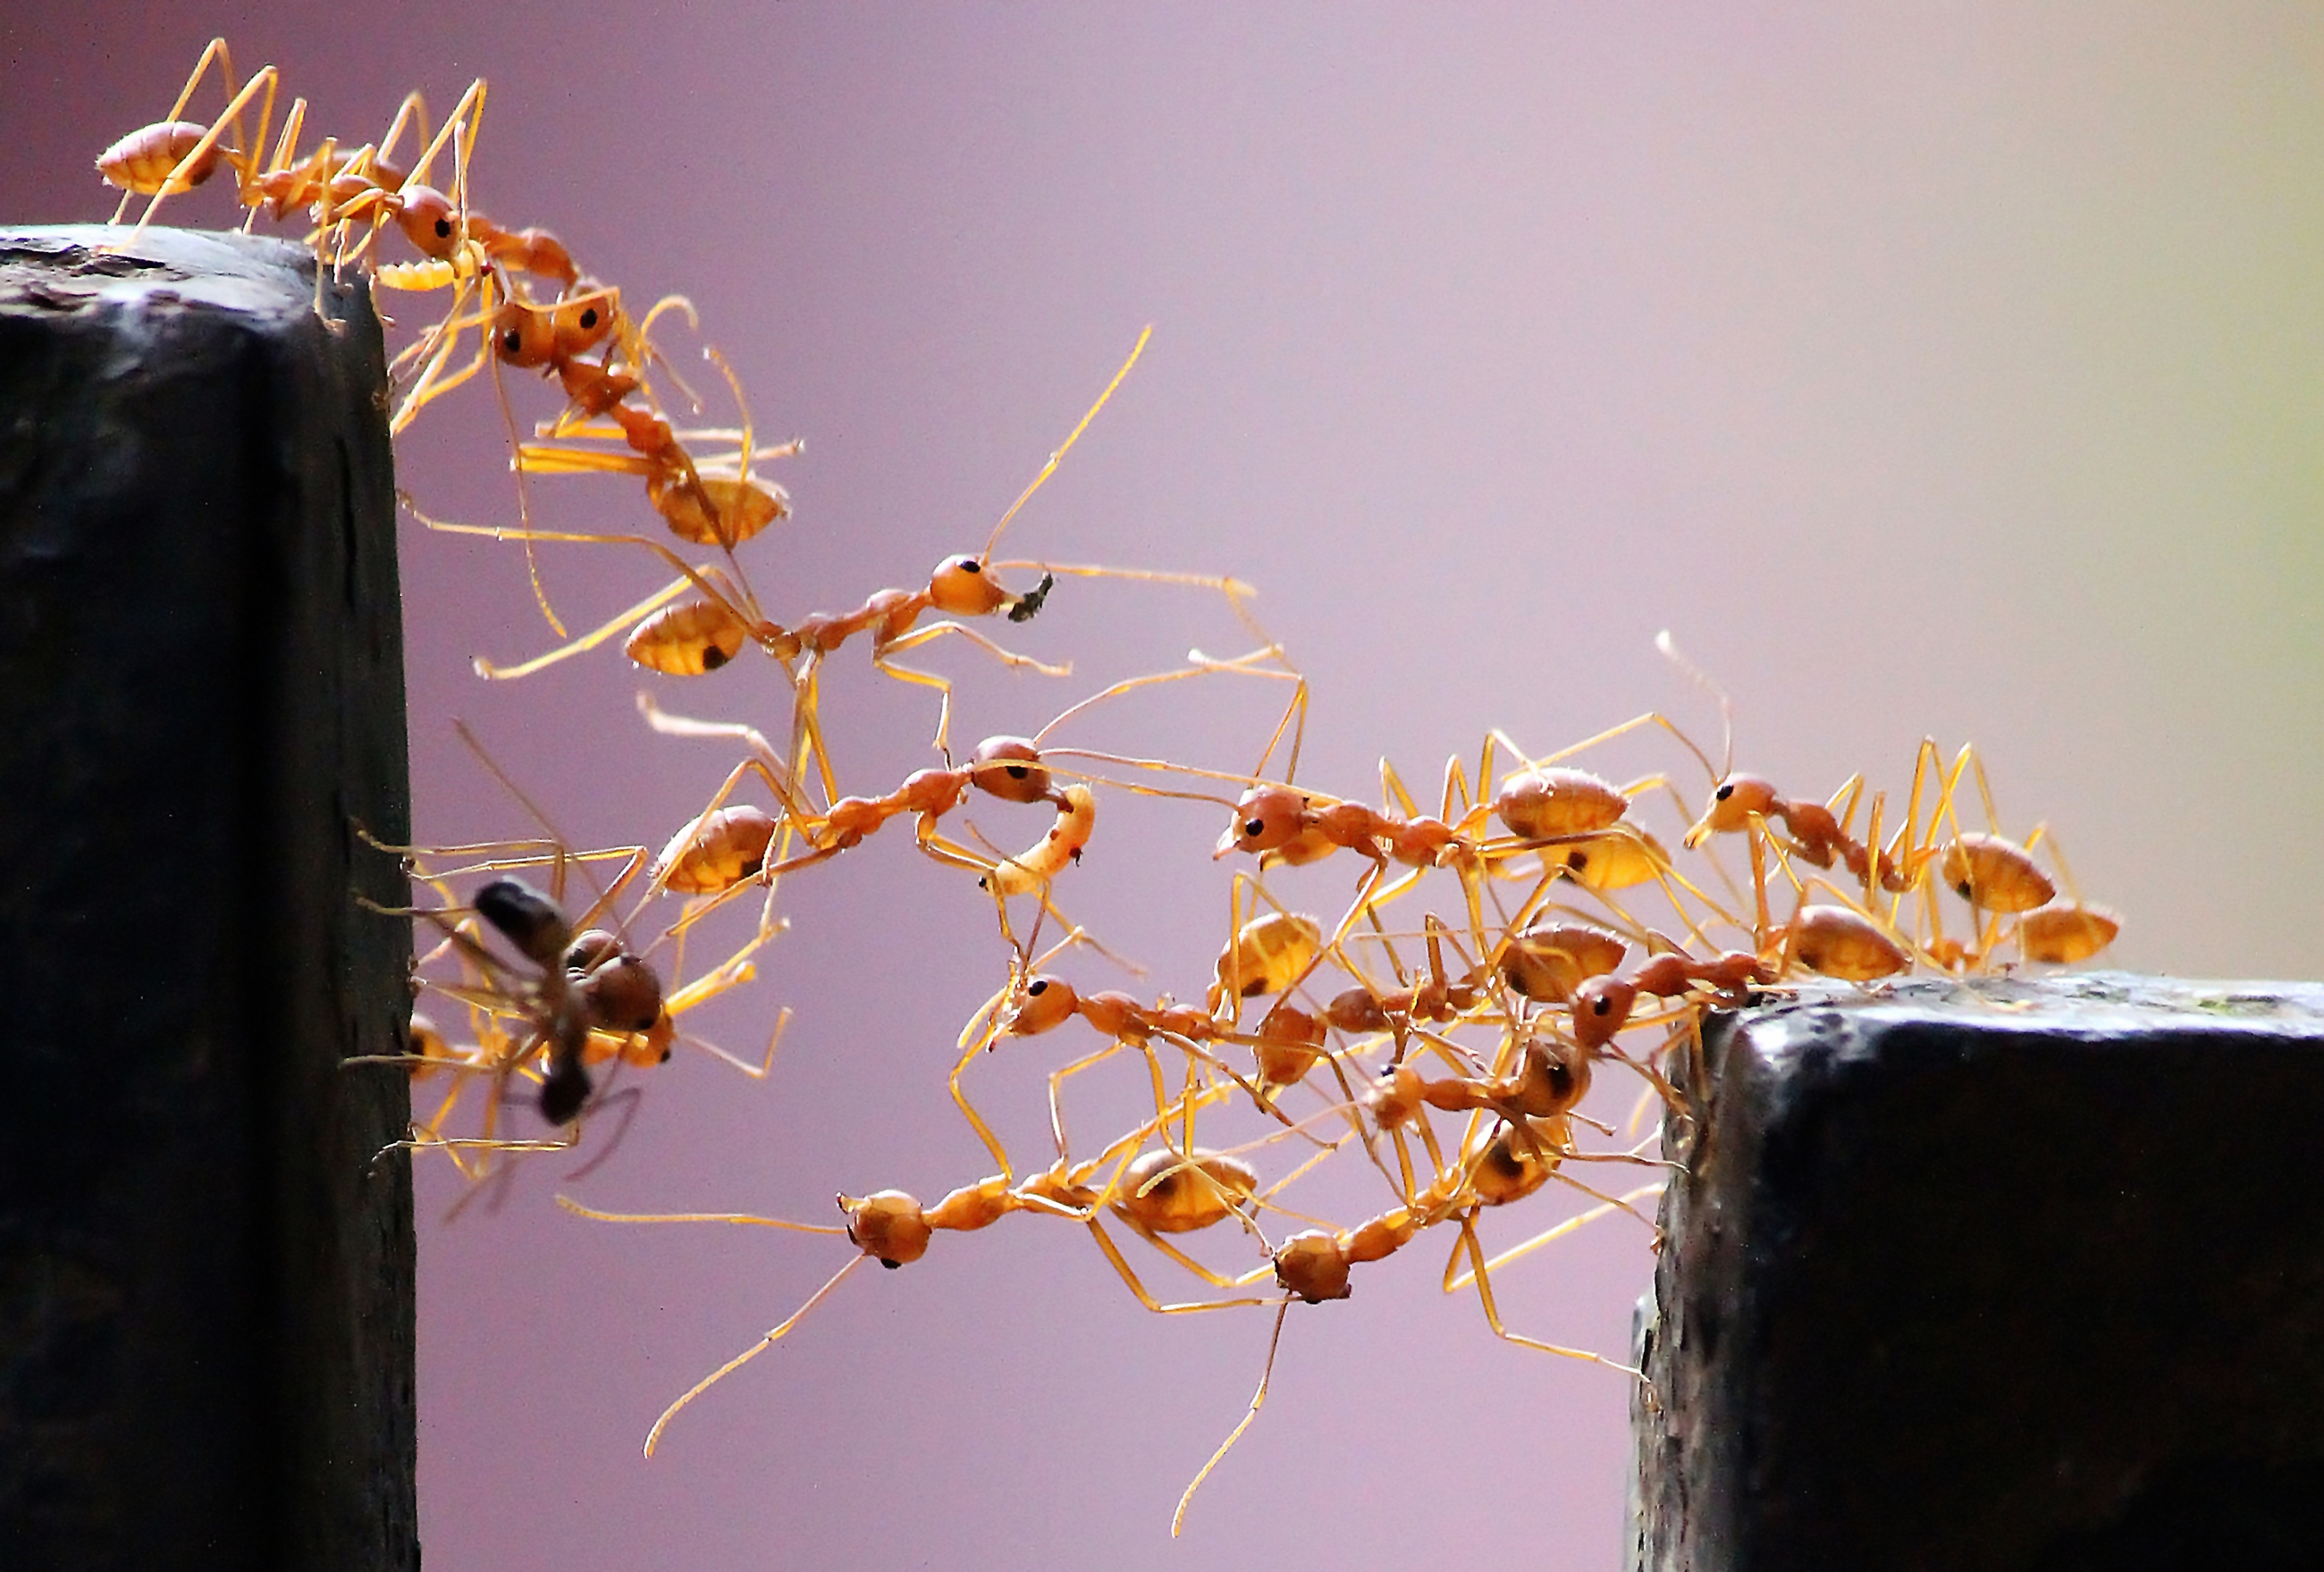 Homepage photo of army ants forming a bridge